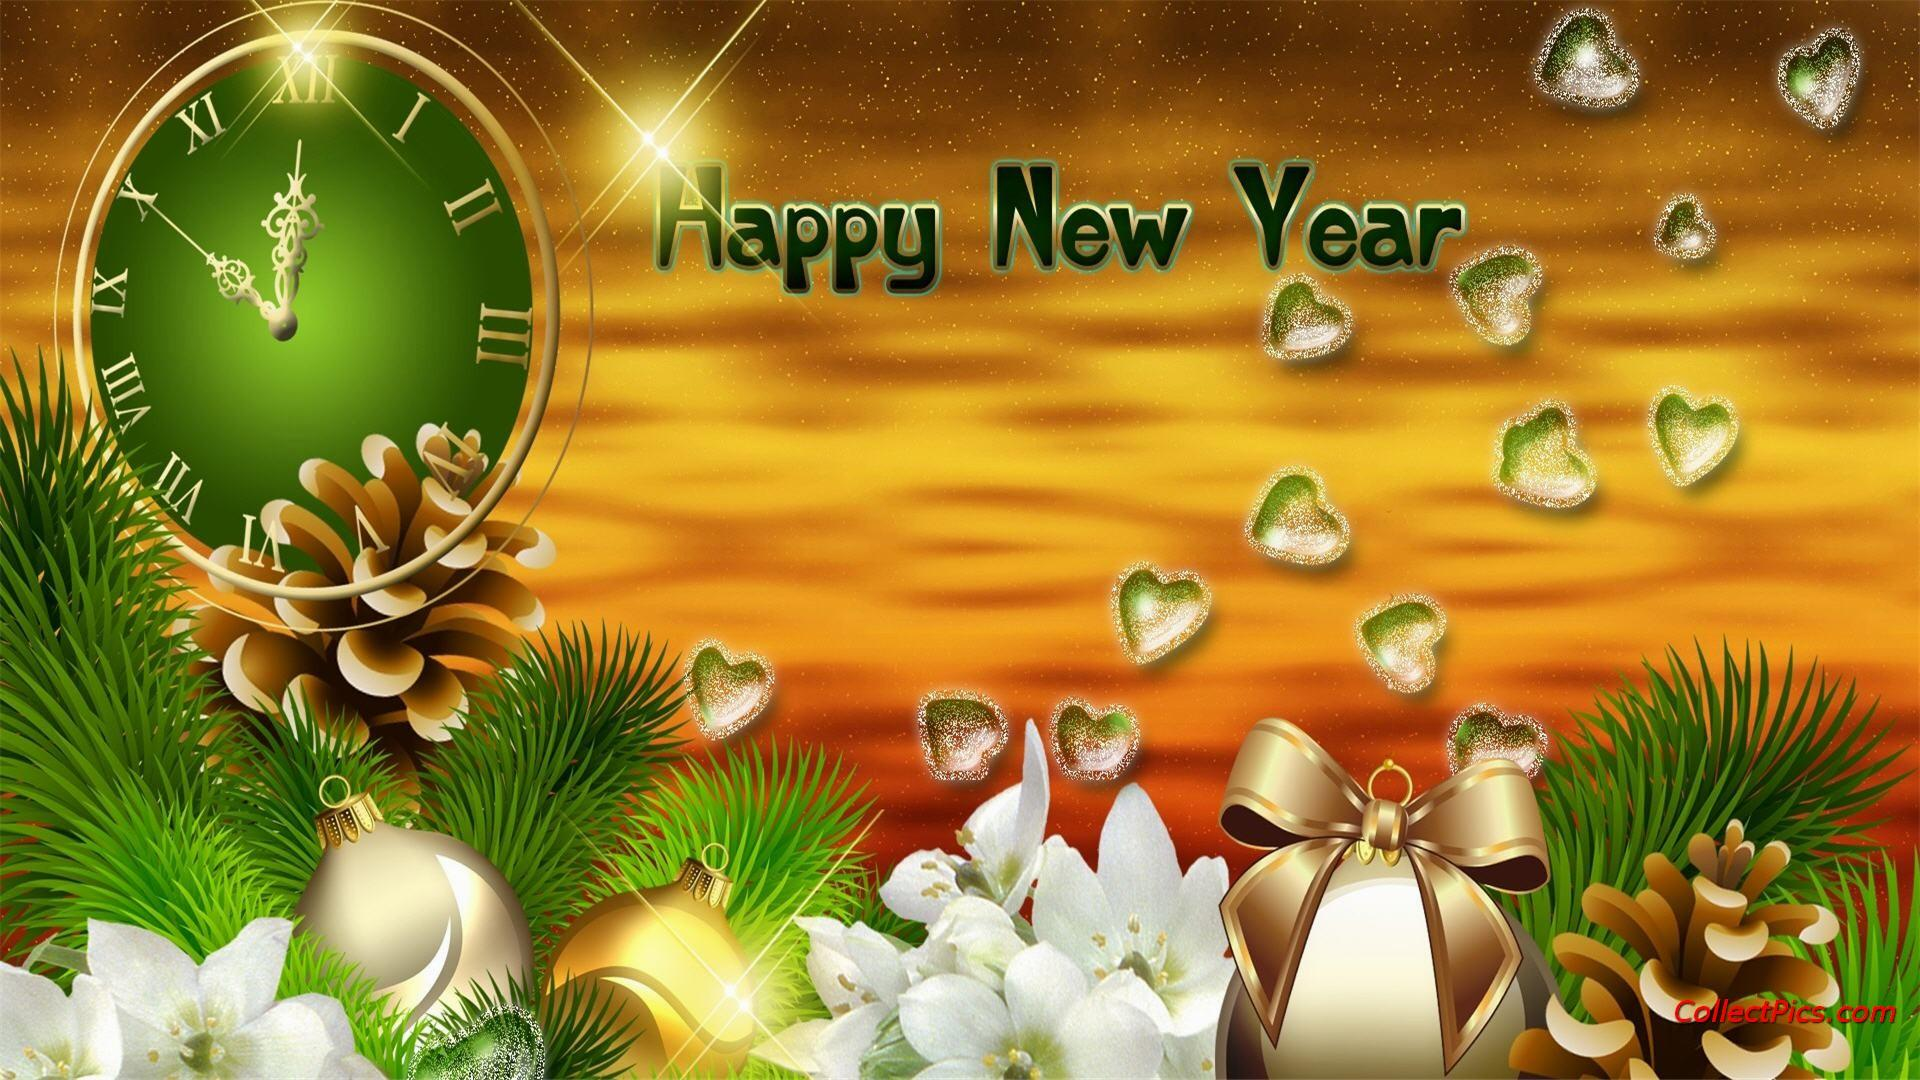 new year wallpaper 2017 free download